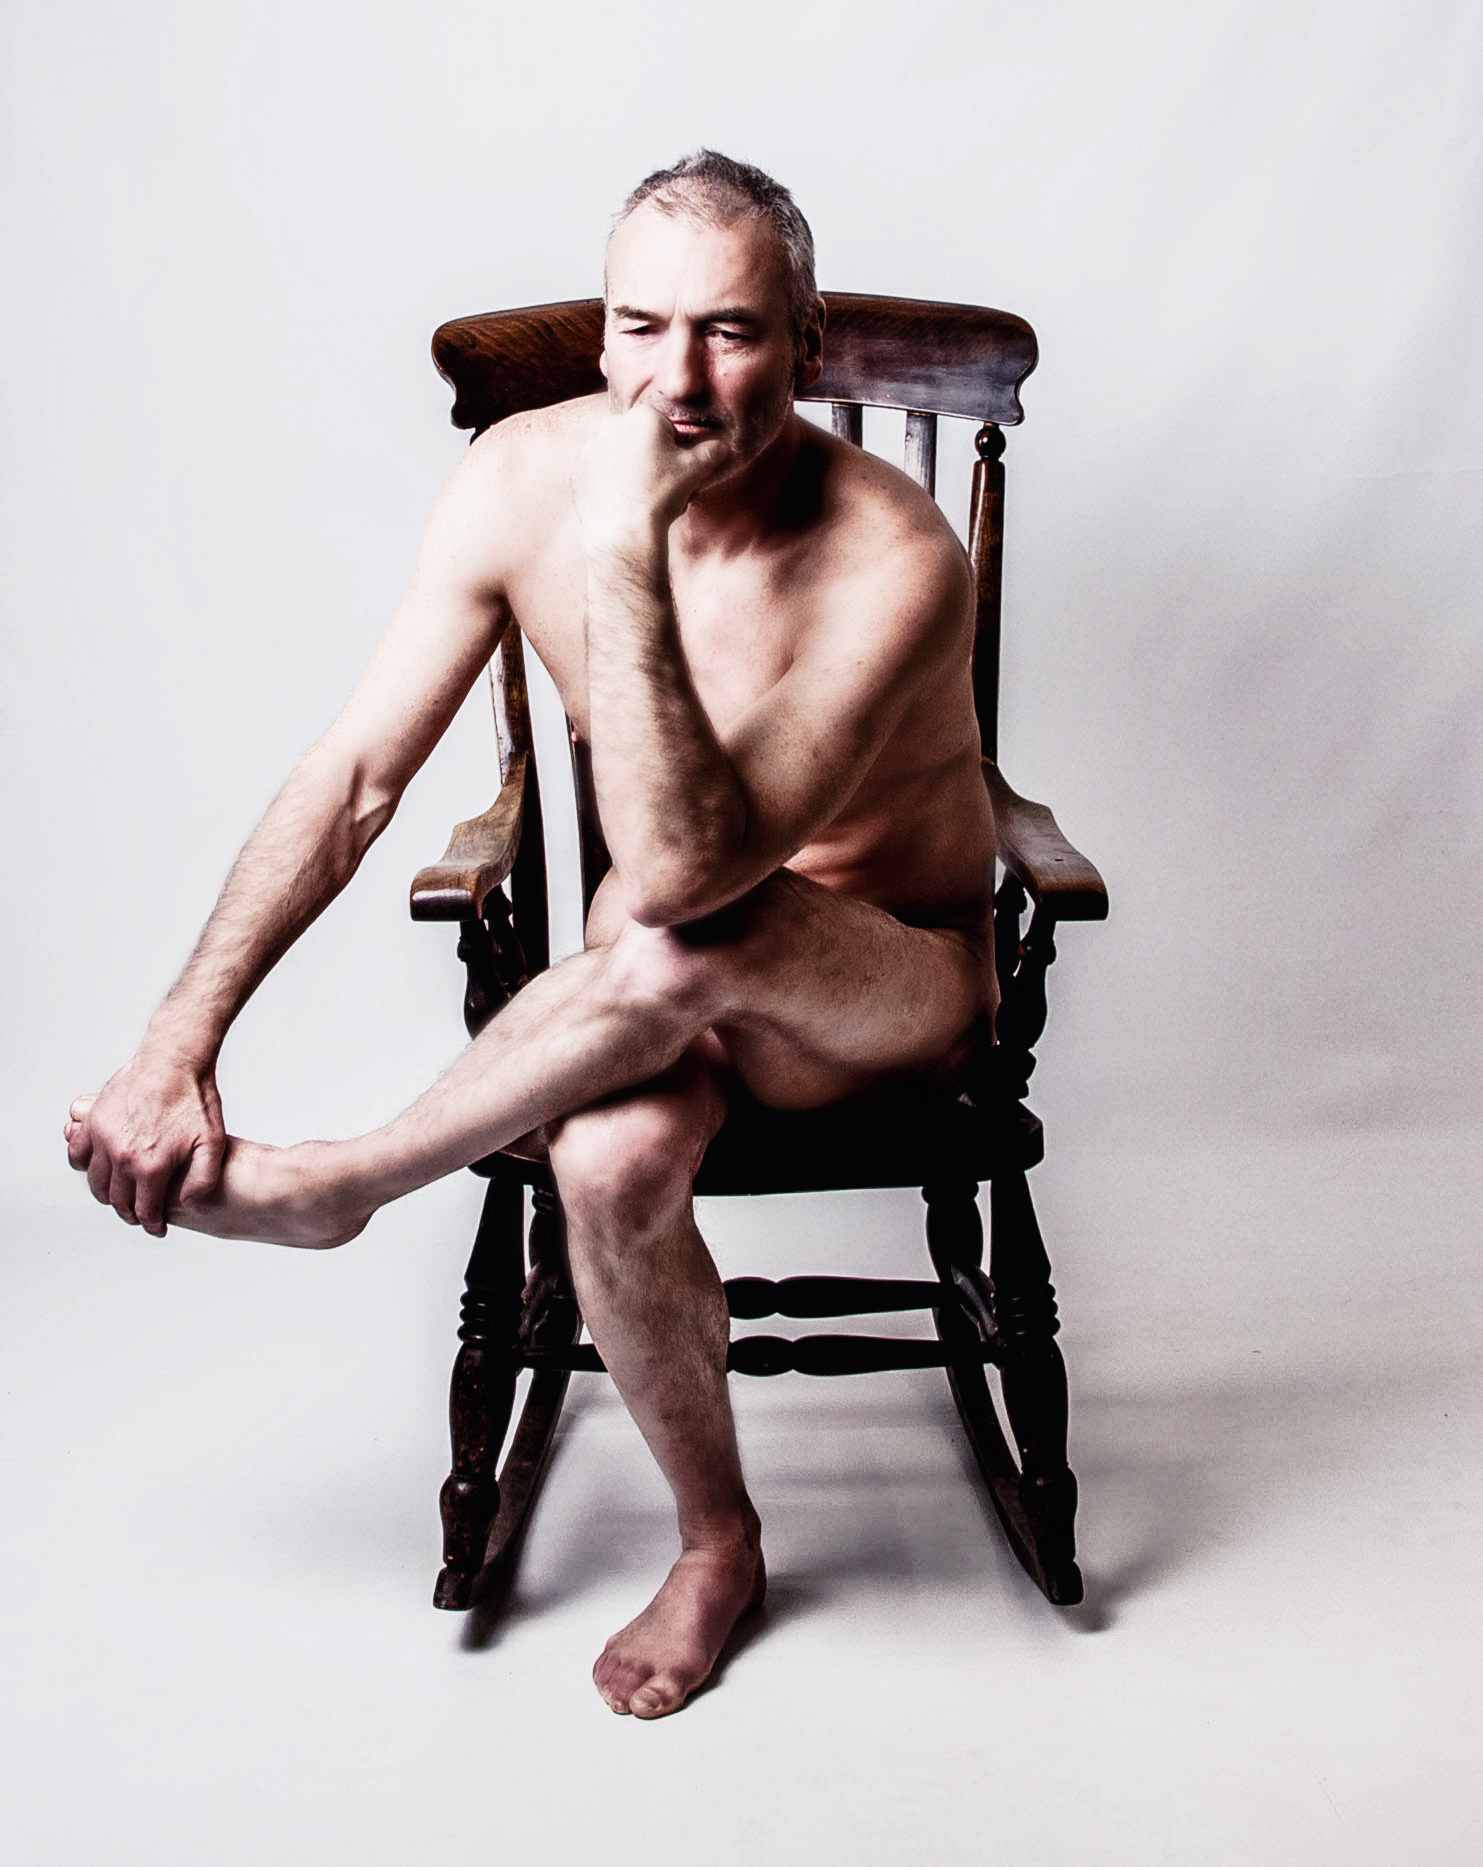 life model Julian, sat on a wooden chair for an artist to draw or sculpt